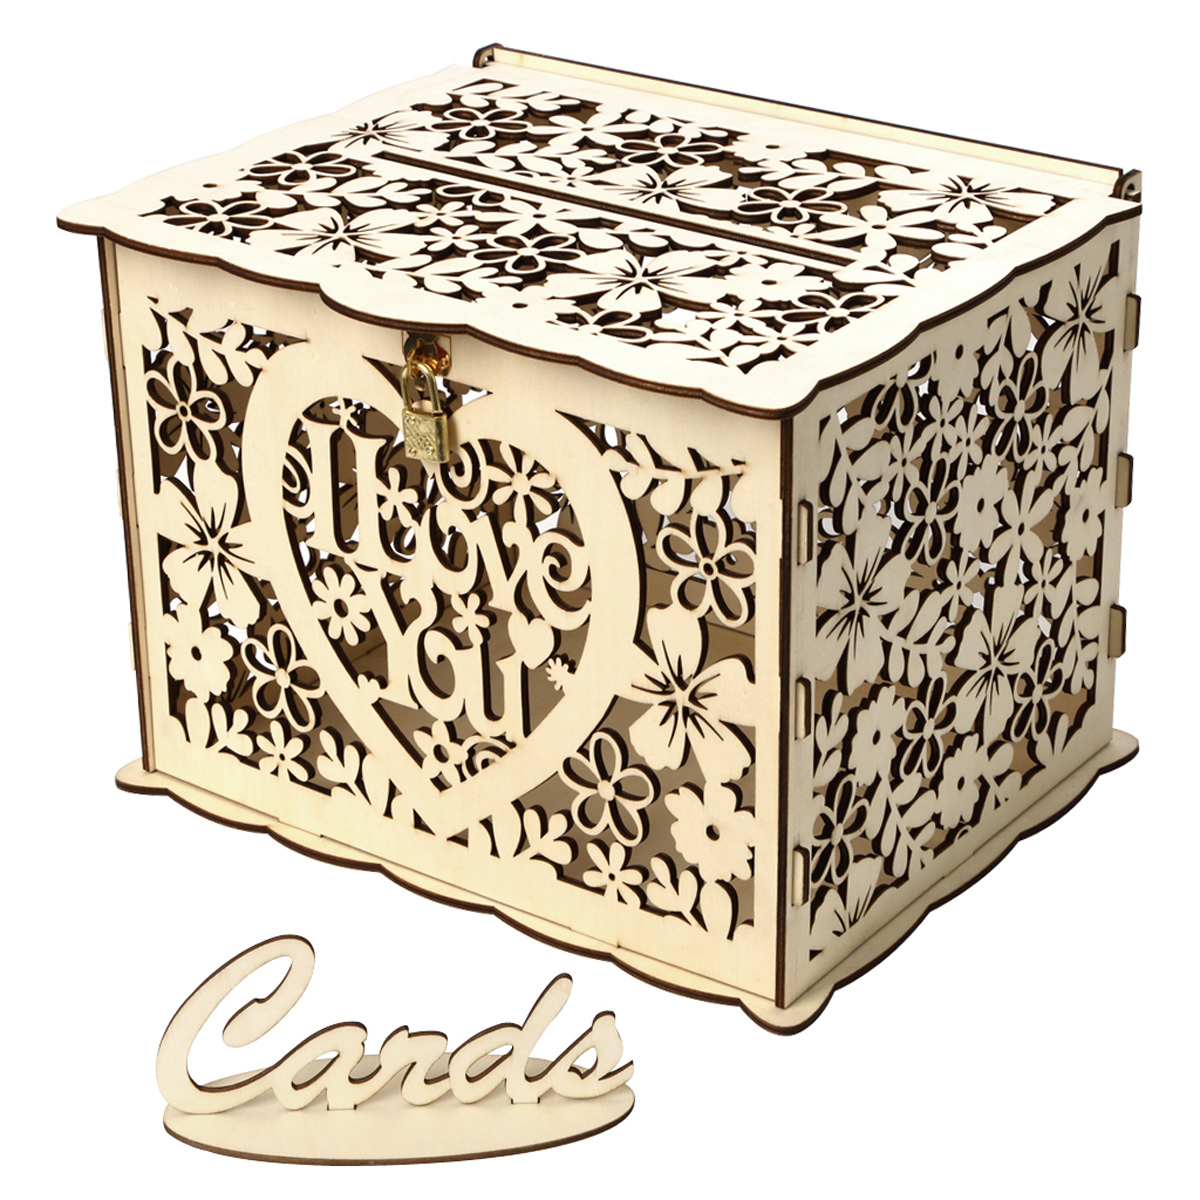 Diy Wedding Gift Card Box Wooden Money Box With Lock Beautiful Decor Supplies For Birthday Party